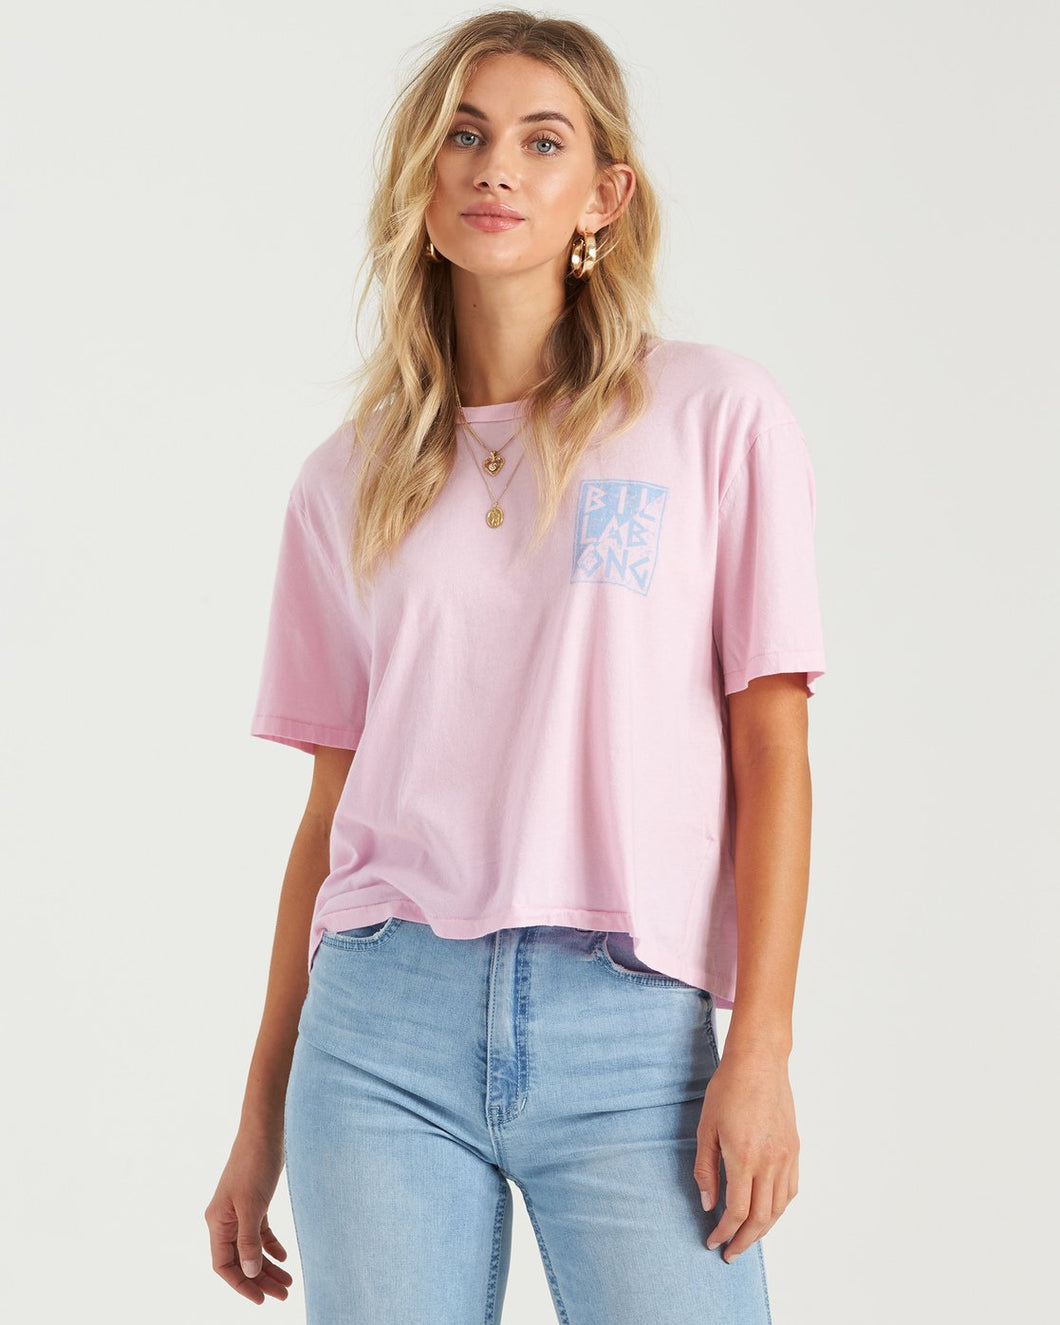 Billabong Women's Rad Day T-Shirt, Rose Dawn